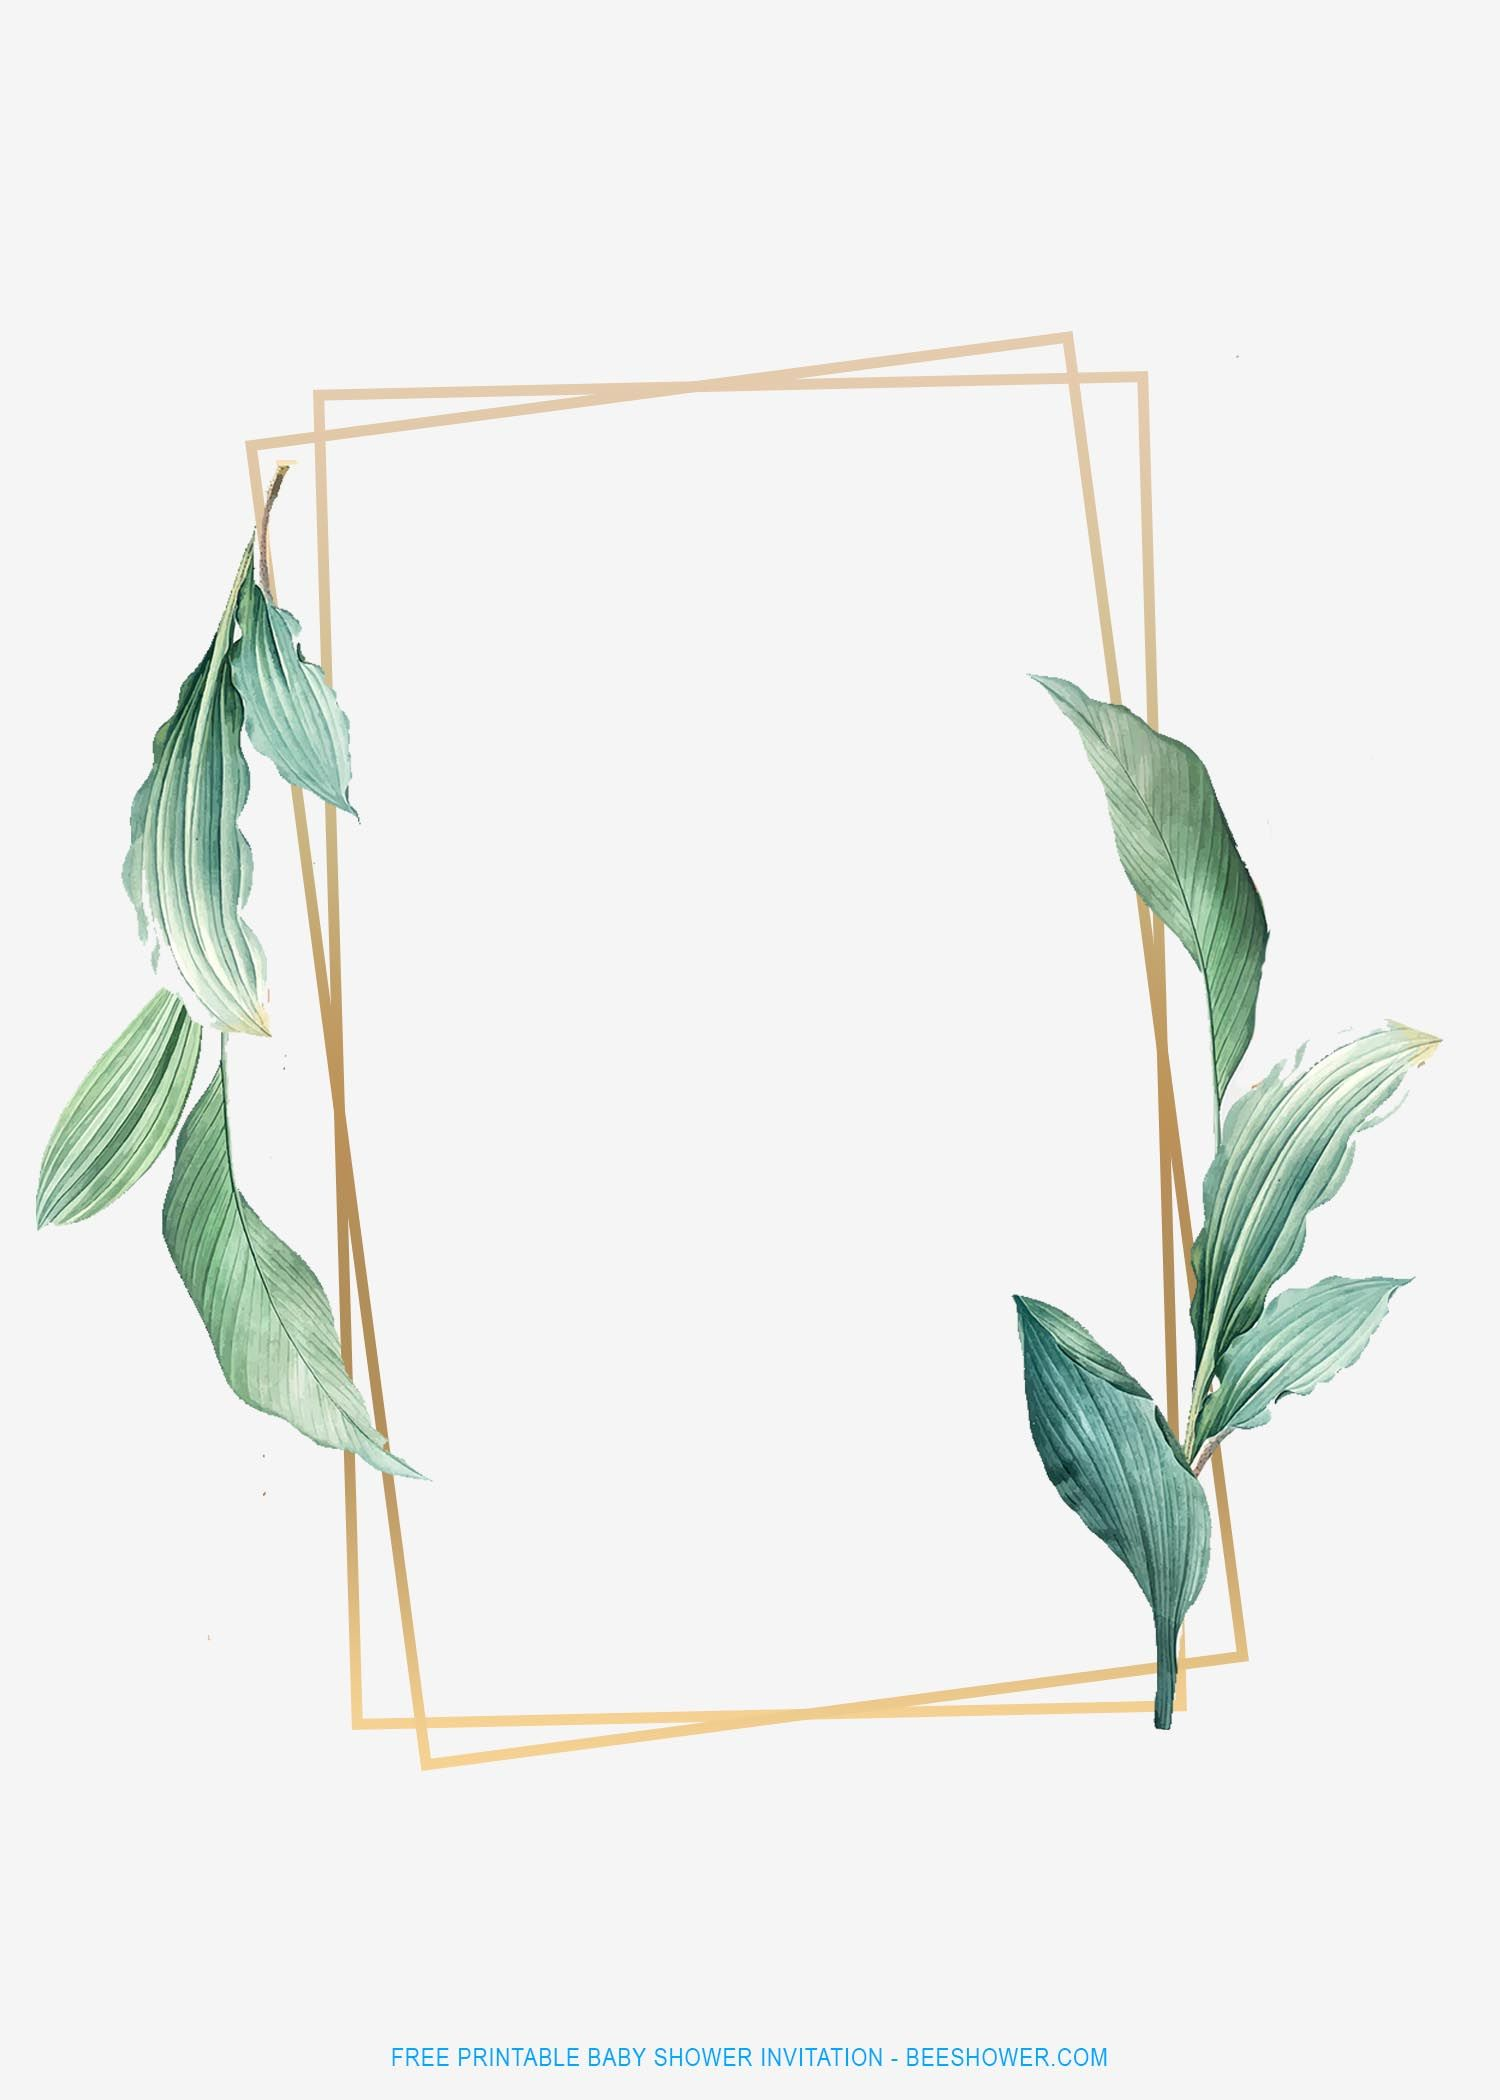 Free Printable Gold Frame And Tropical Leaf Invitation Templates Leaf Invitations Tropical Leaves Free Printable Baby Shower Invitations